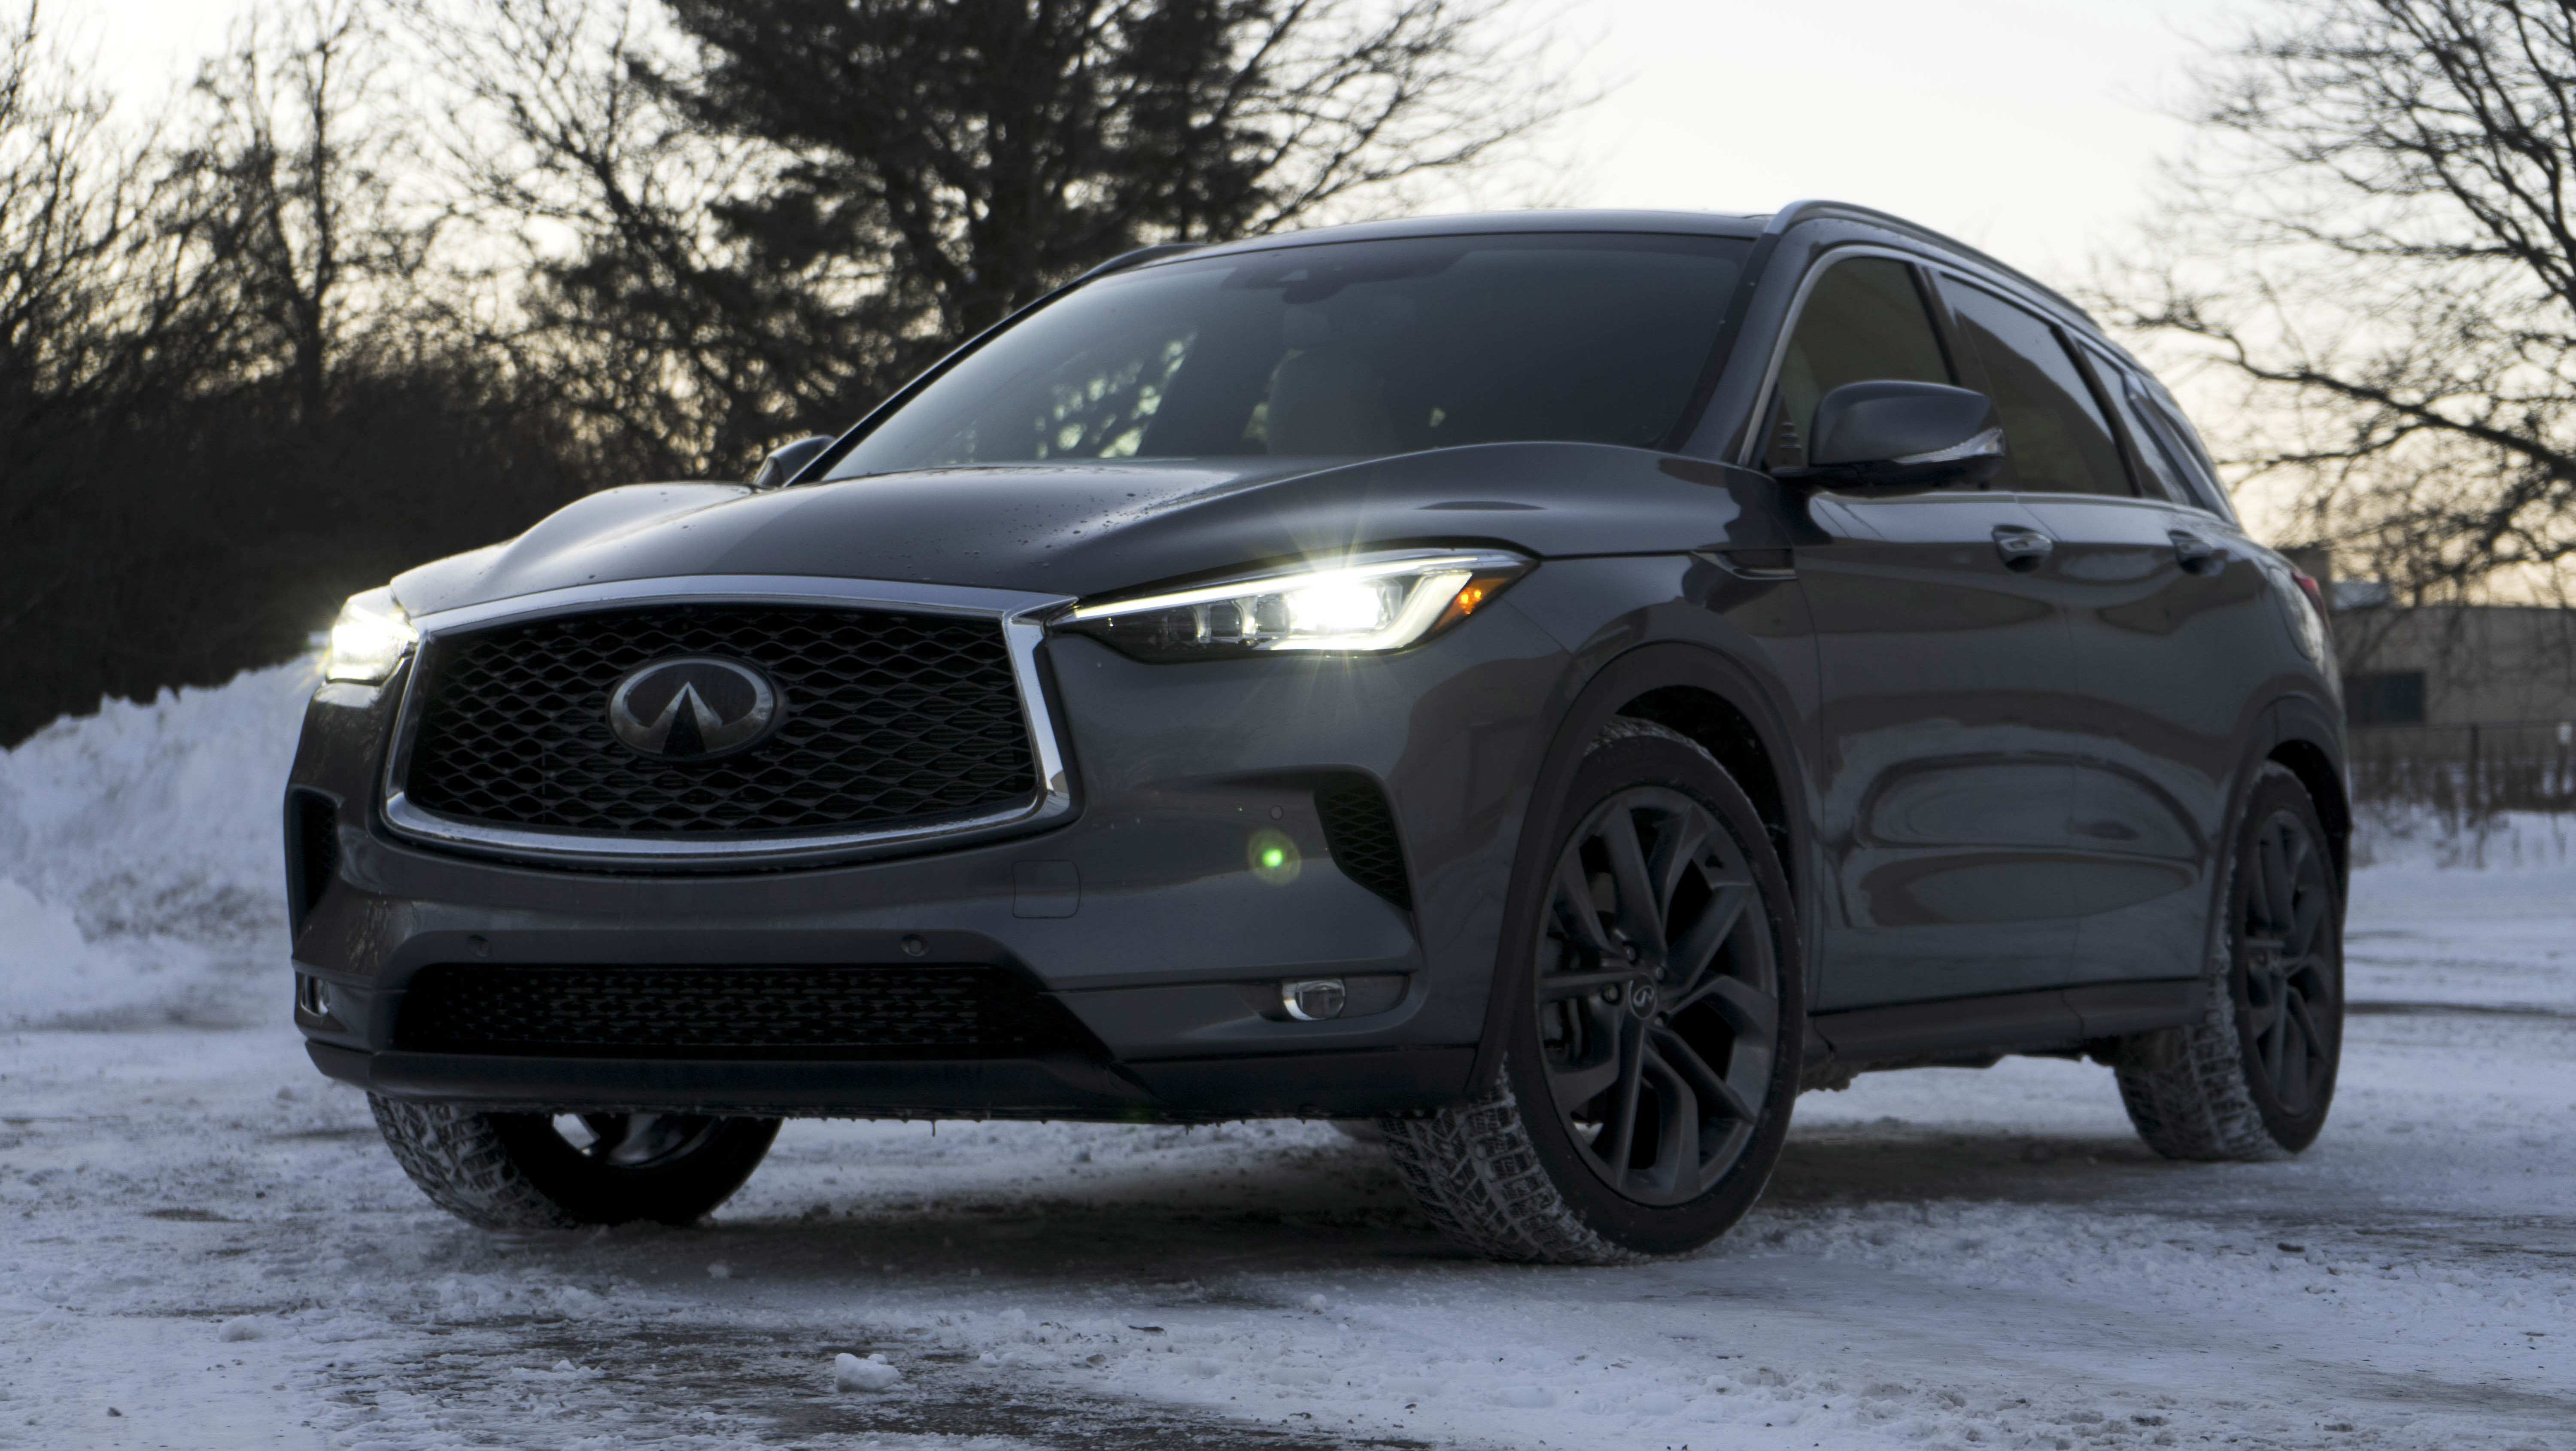 38 New New 2019 Infiniti Qx50 Horsepower Review Interior